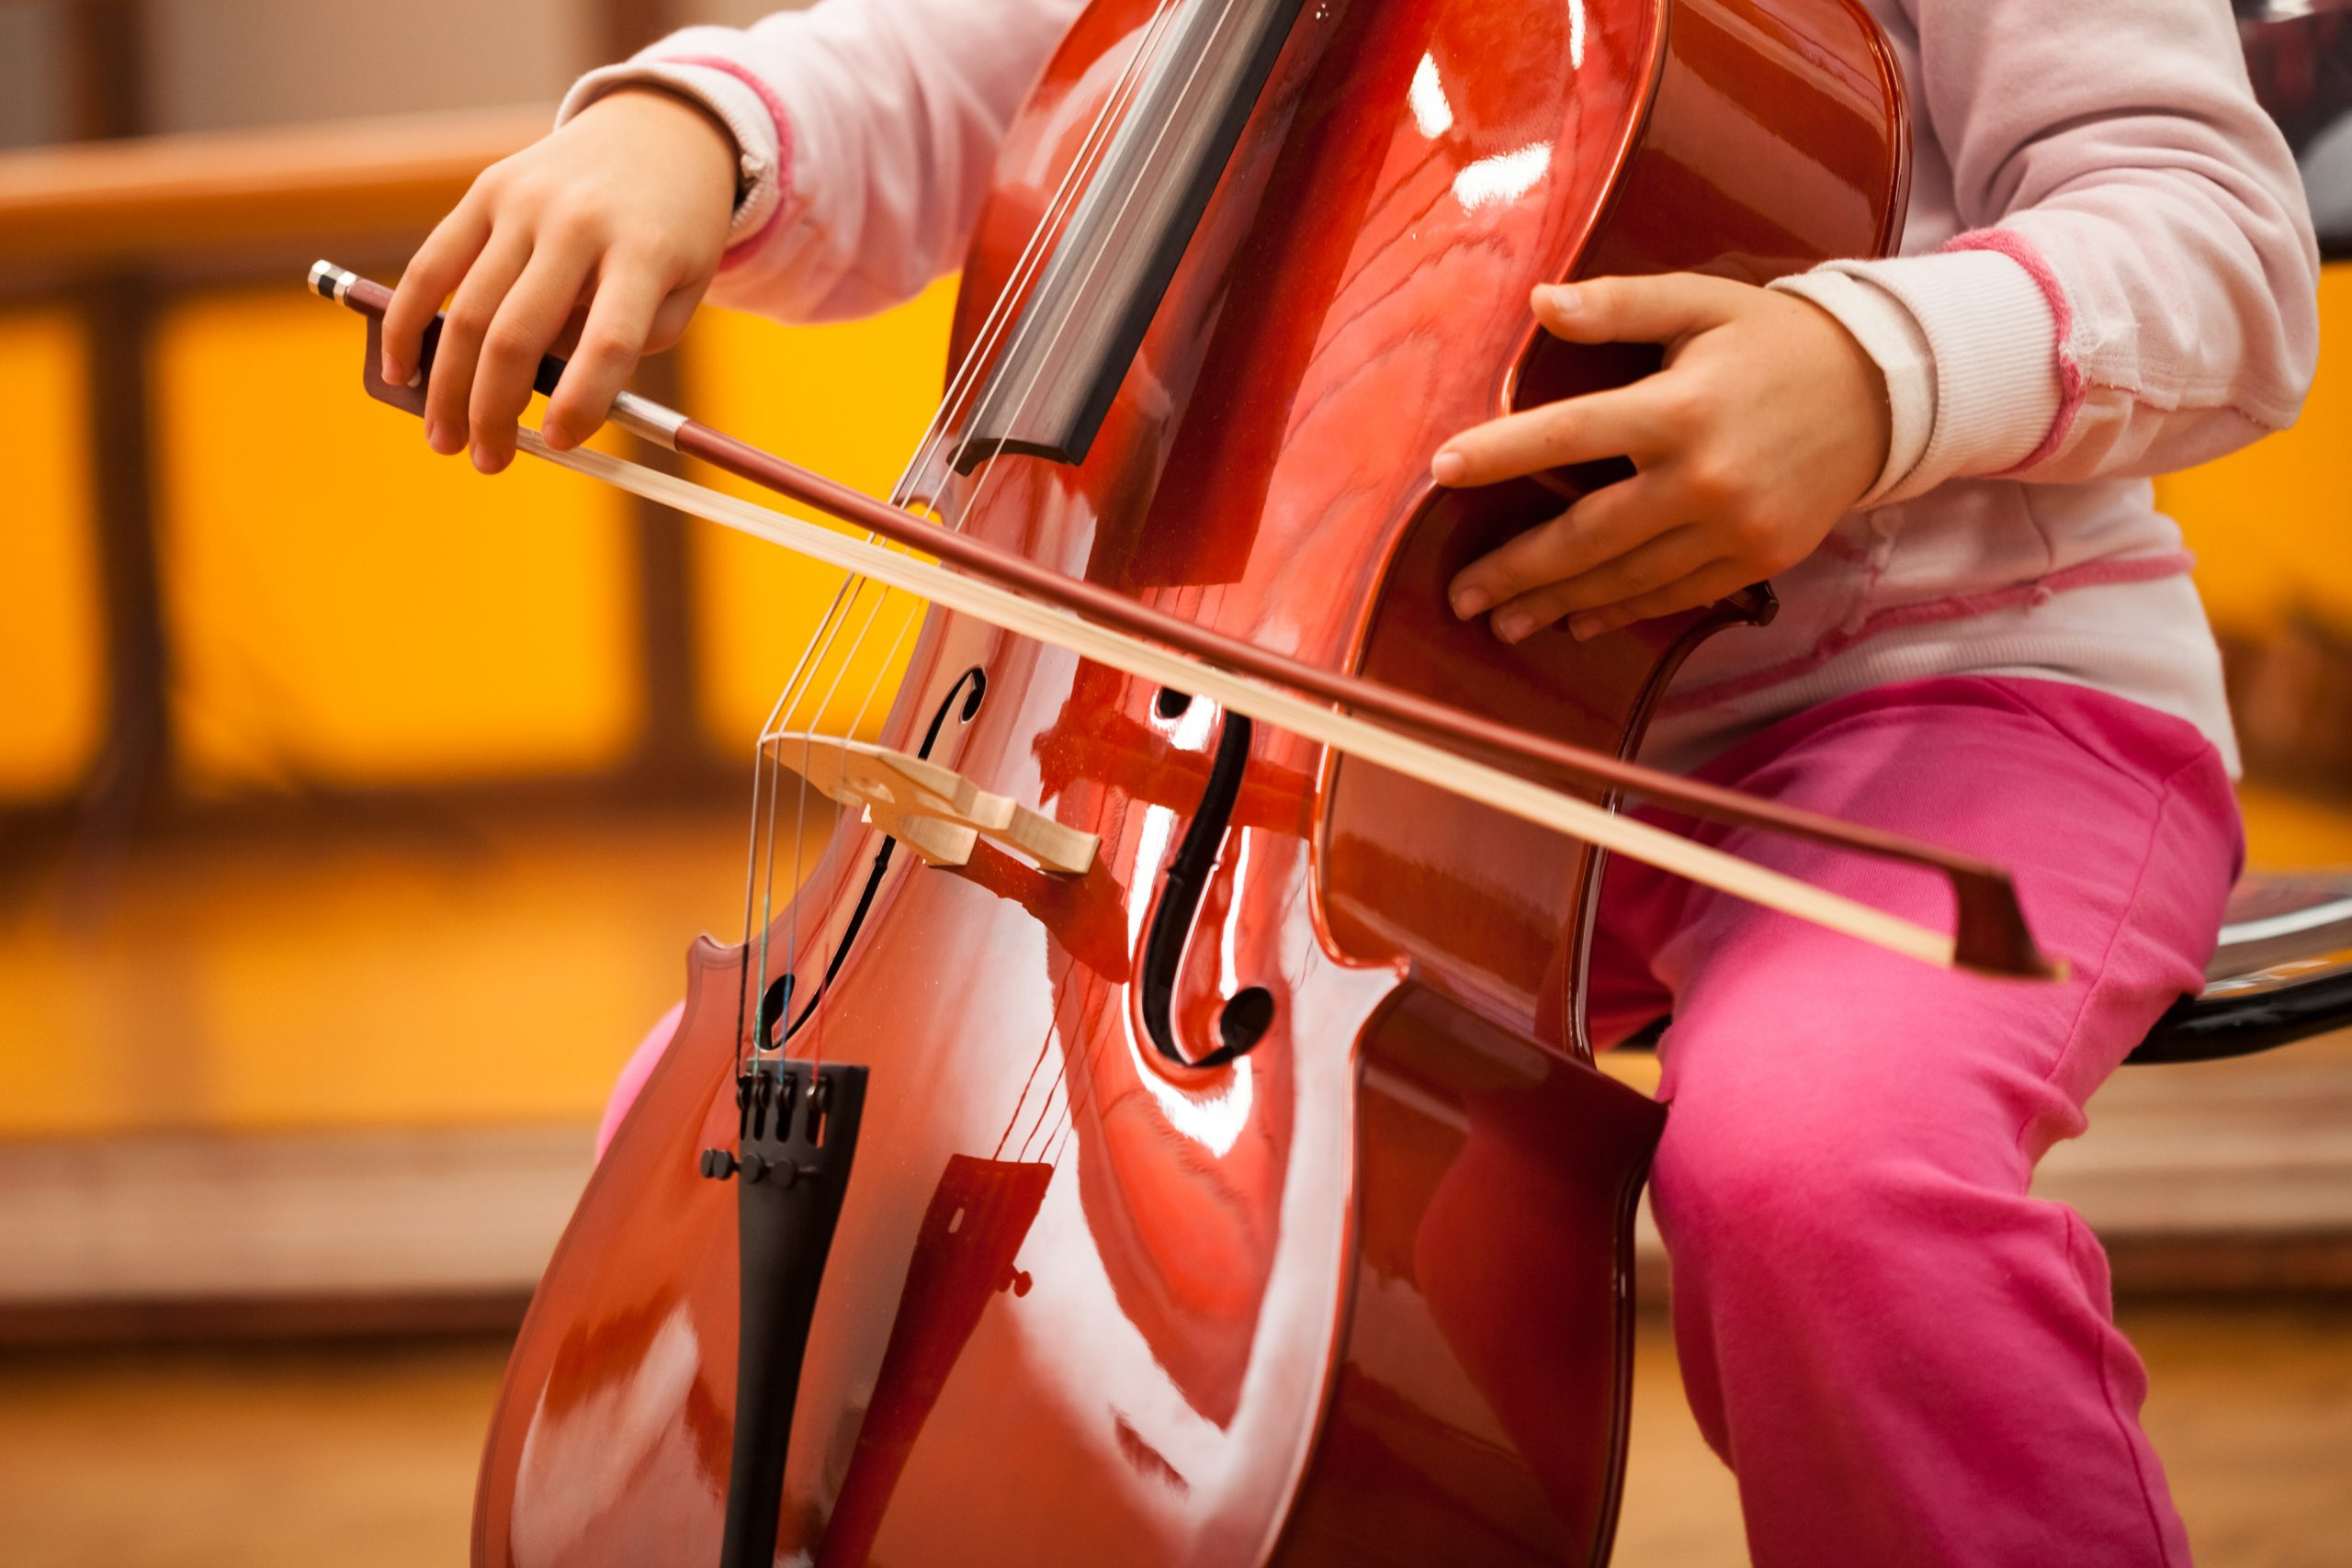 group cello classes in nyc for kids & adults